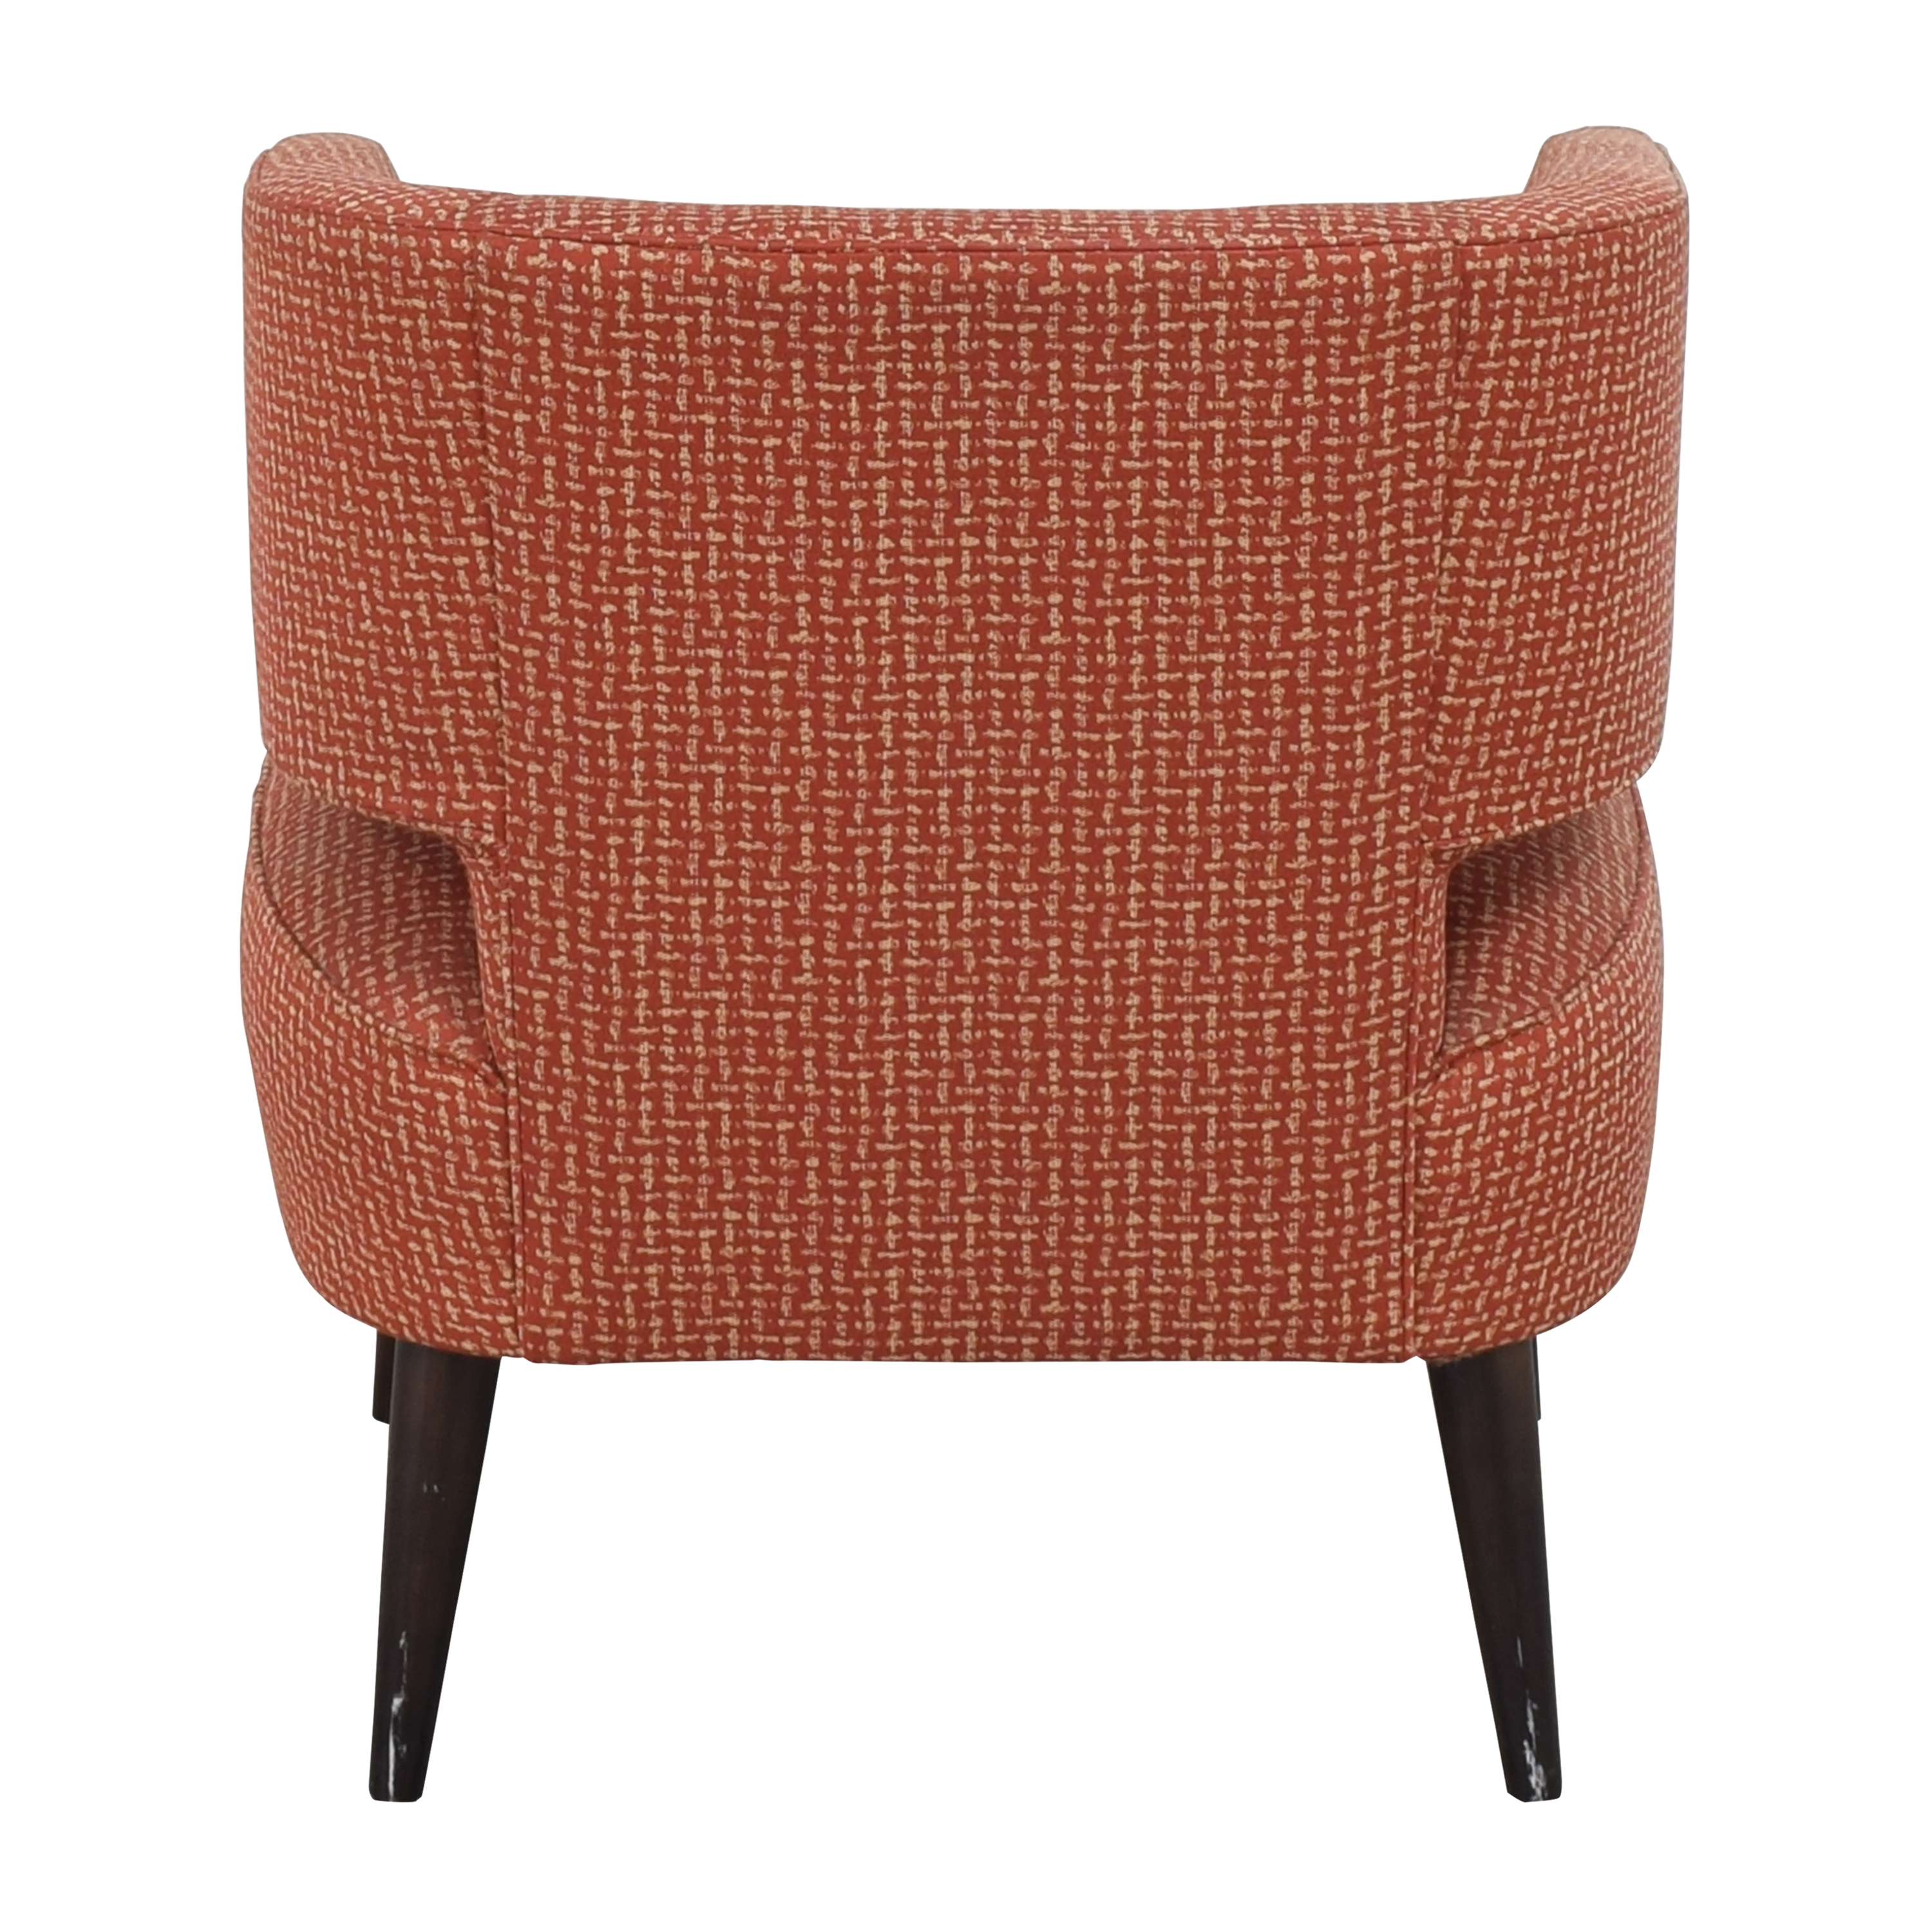 buy Room & Board Room & Board Modern Accent Chair online